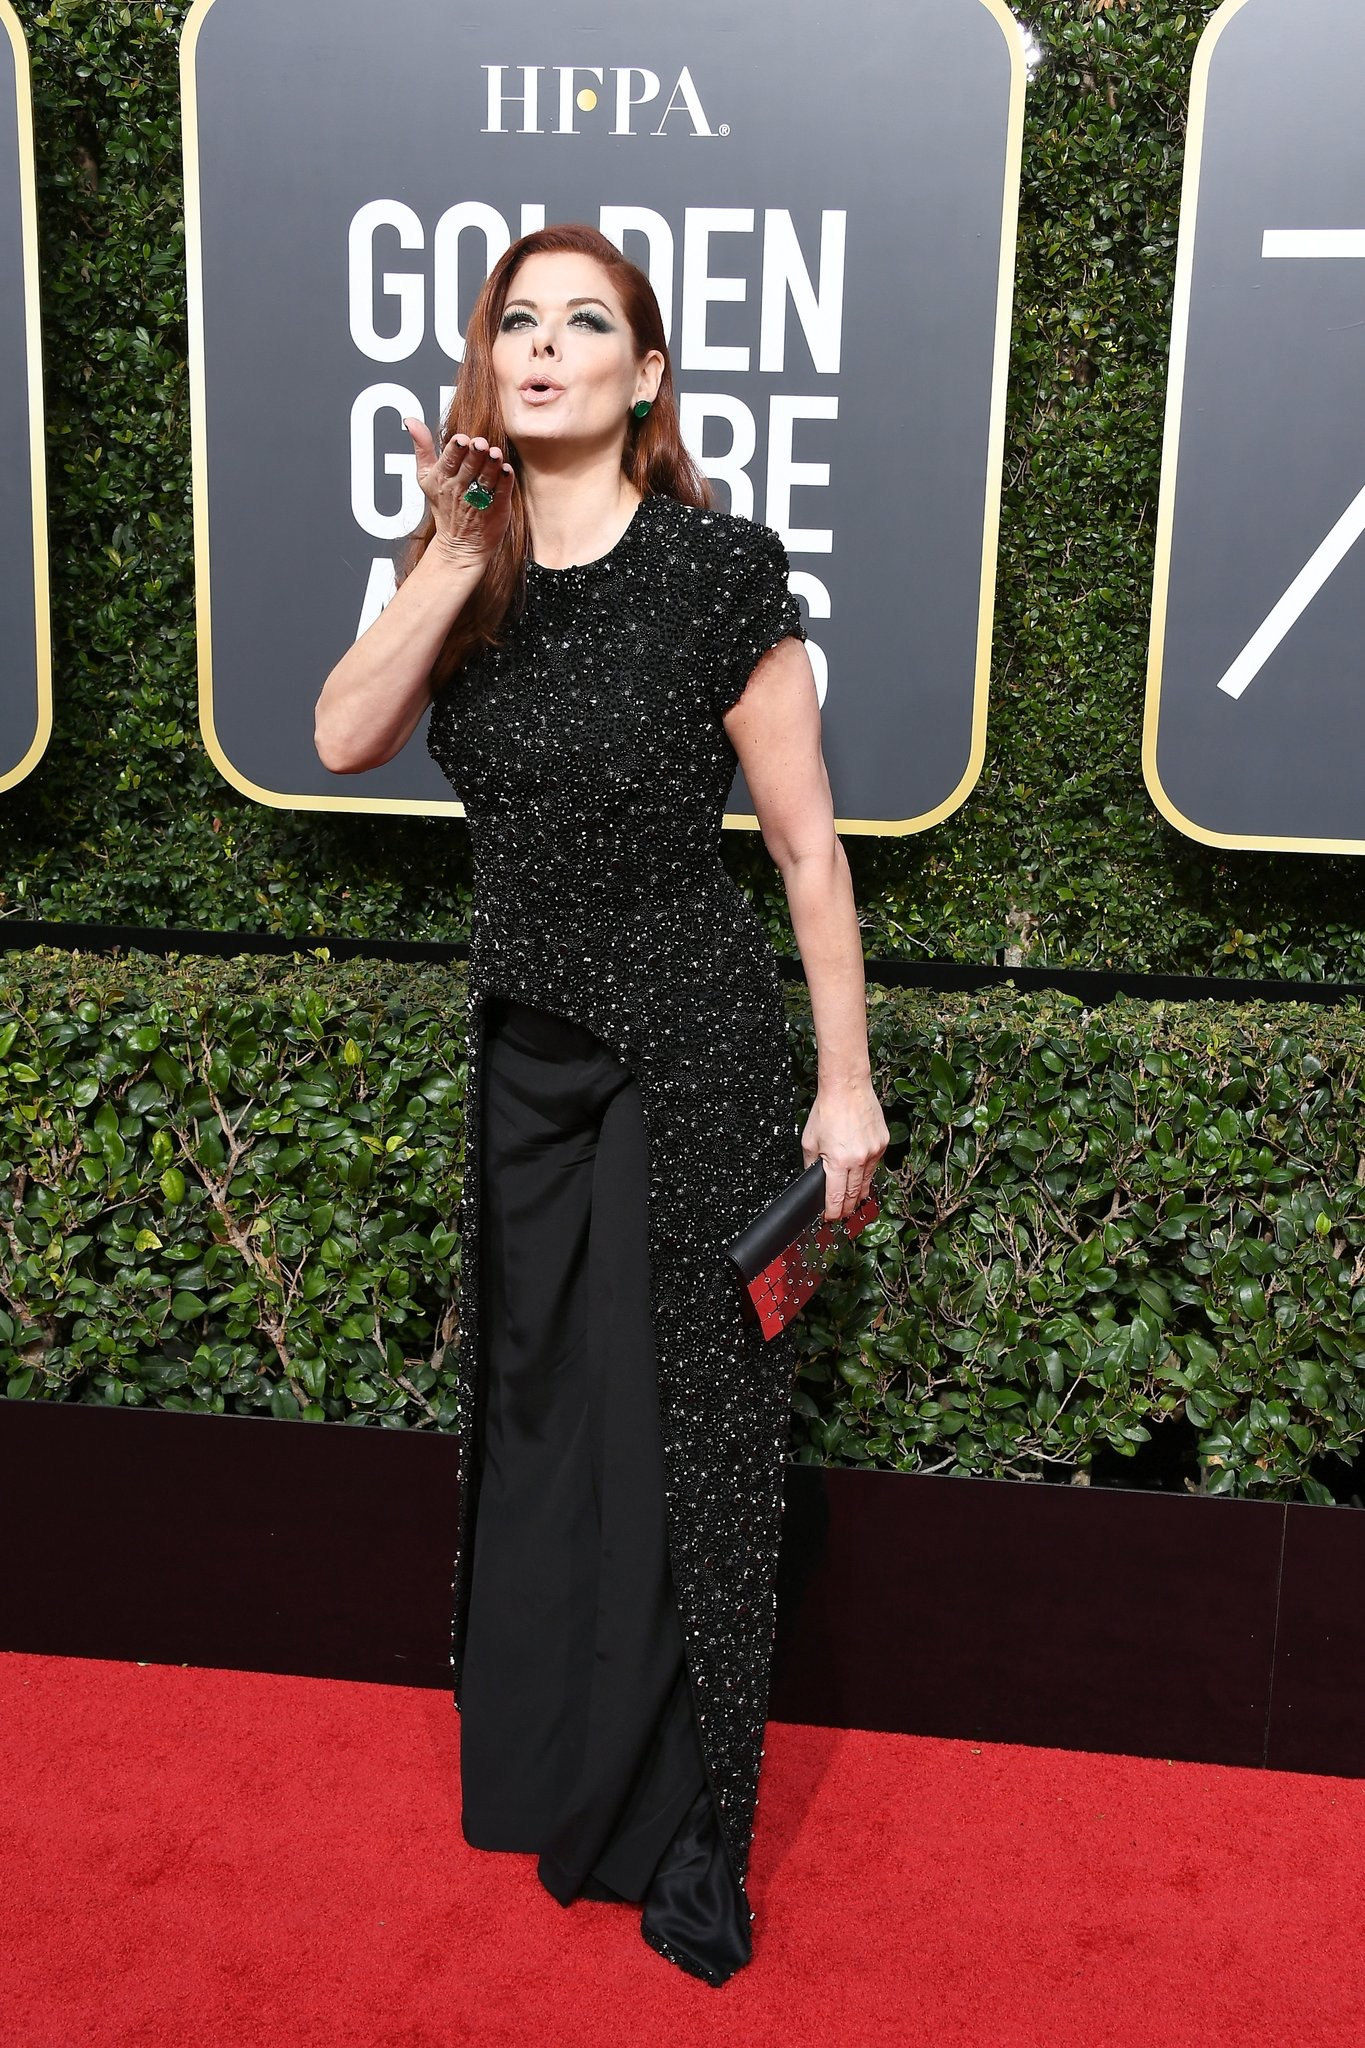 Golden Globes: Why are you wearing black?